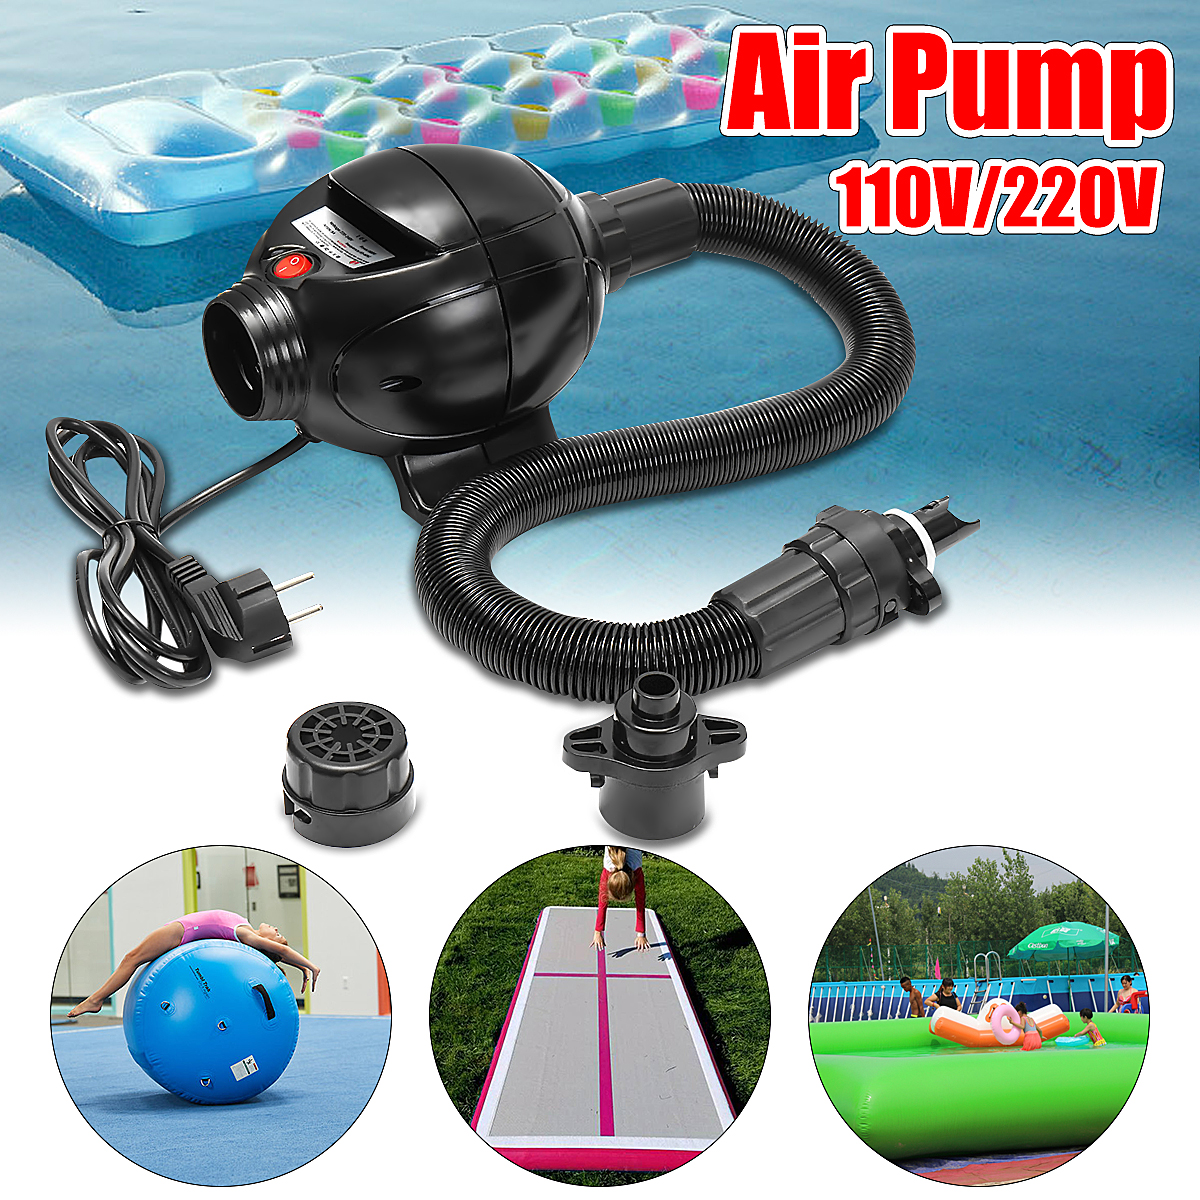 110V/220V Electric Air Pump For Air Track Inflatable Home Gymnastics Tumbling Mat high quality 4 1 0 2m inflatable air track gymnastics air track trampoline for water games